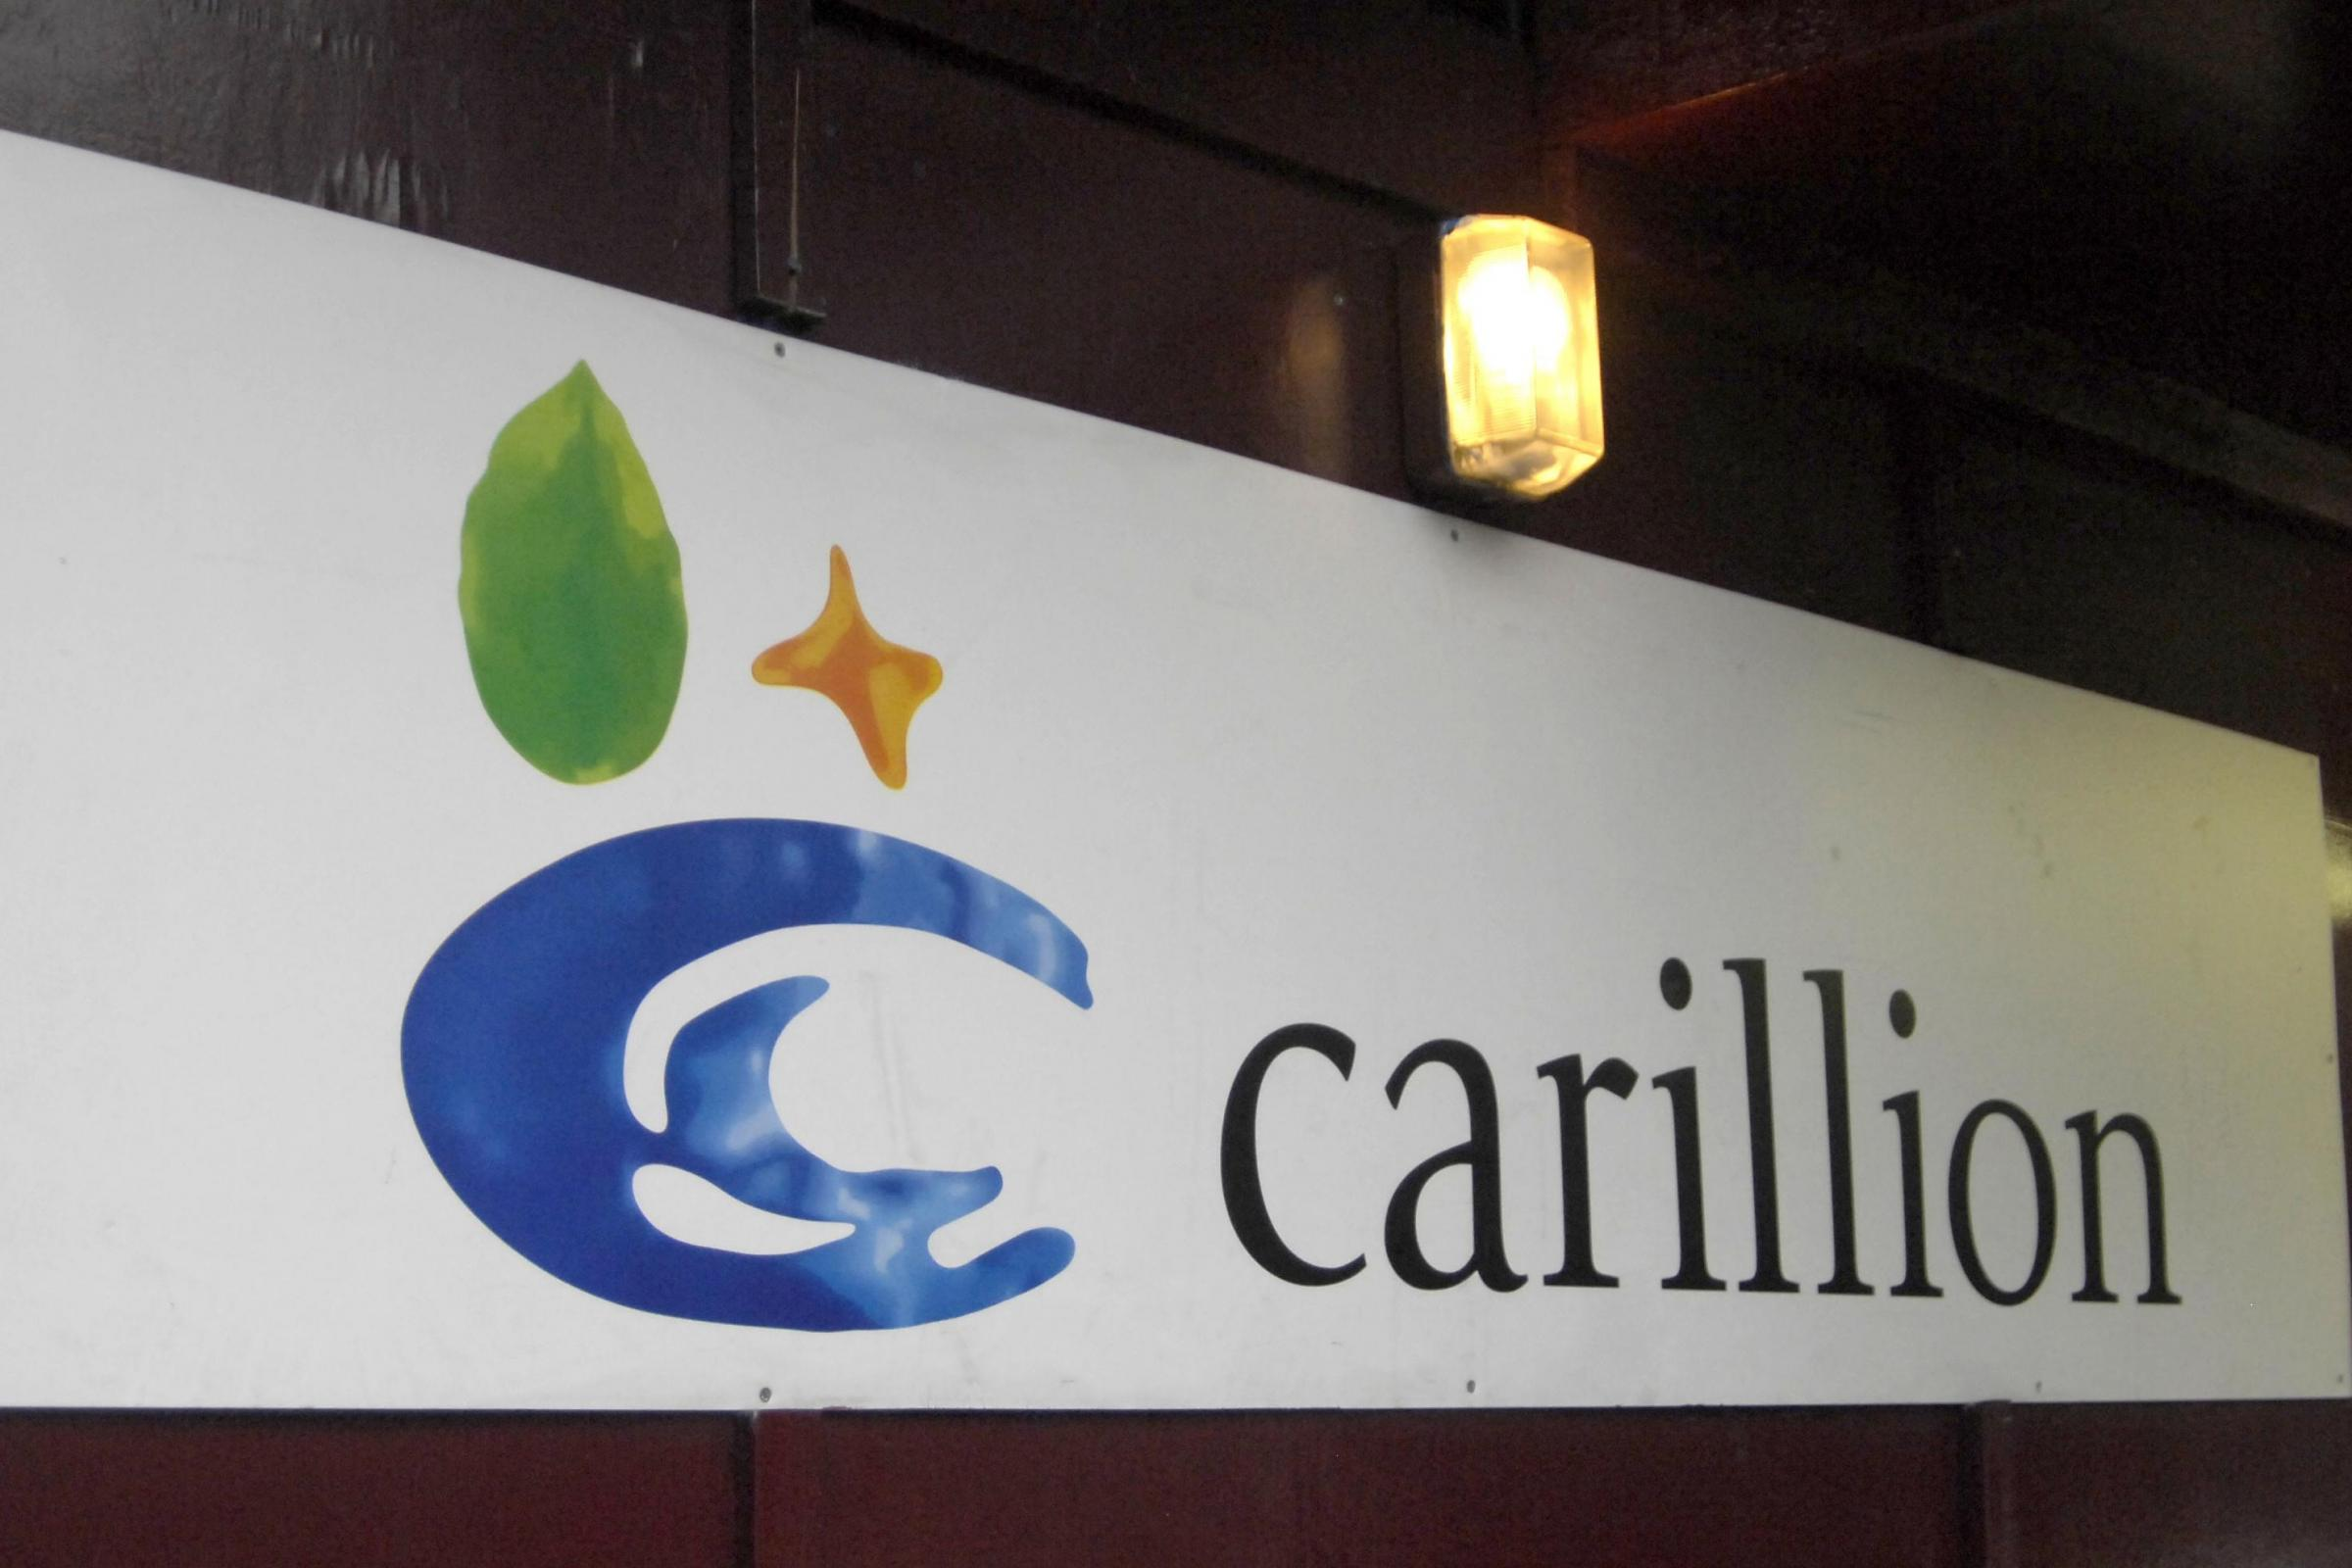 CARILLION COLLAPSE TO COST TAXPAYERS £148M, AUDIT FINDS